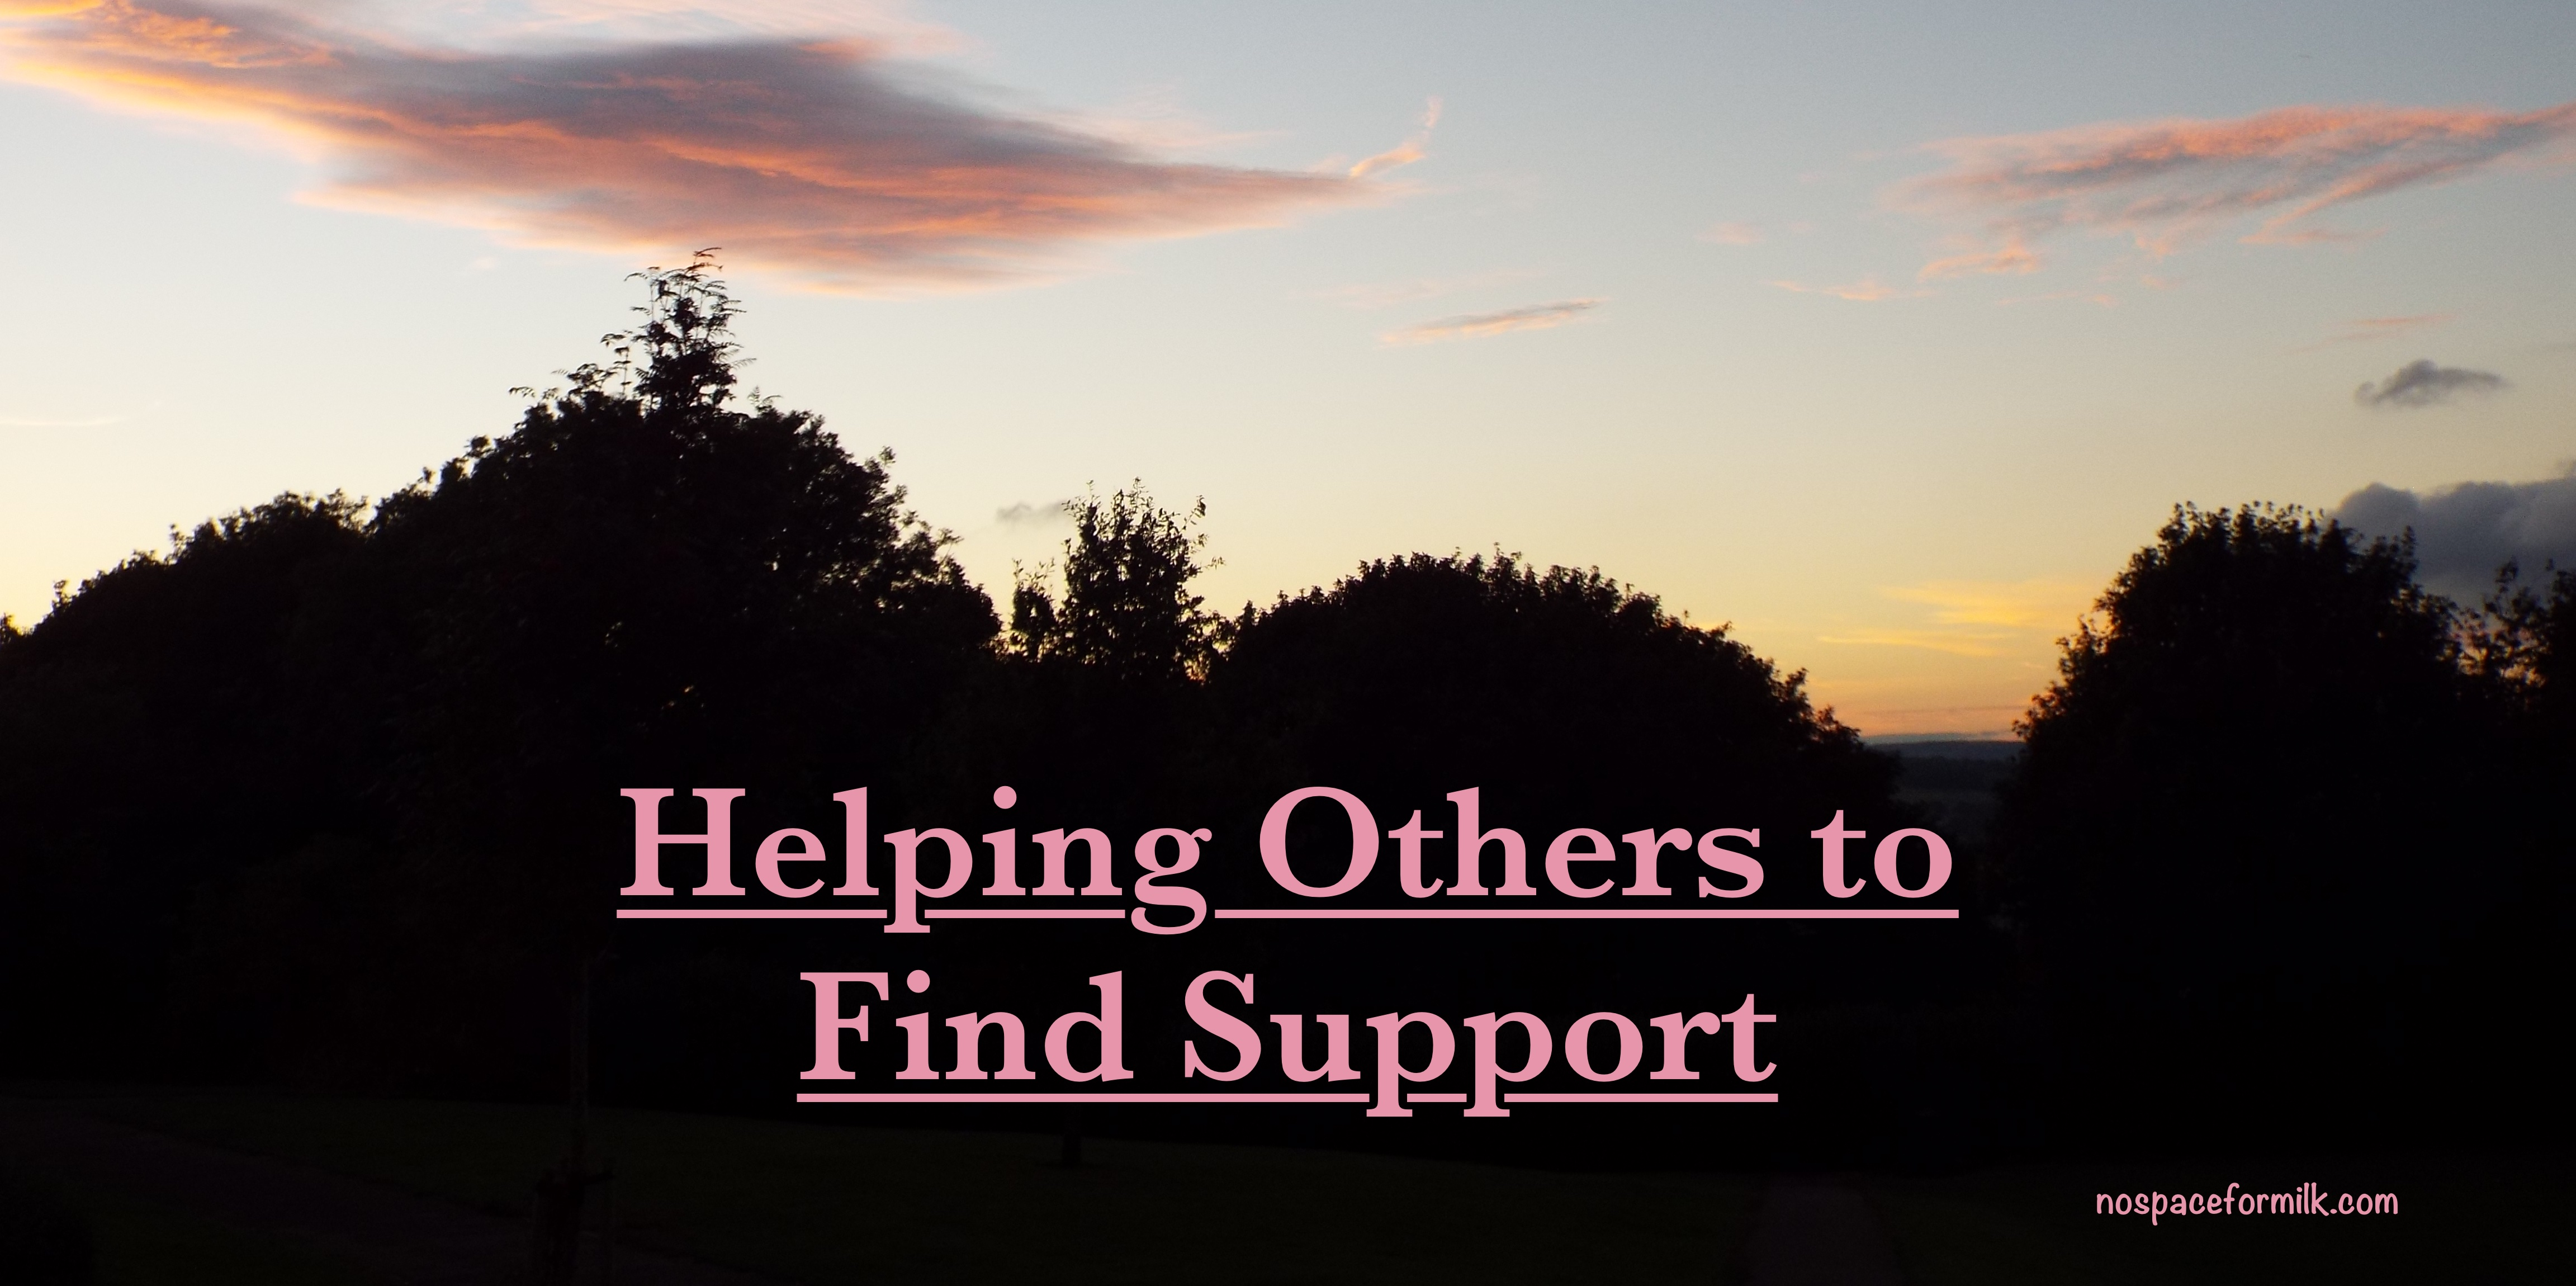 Helping Others to Find Support